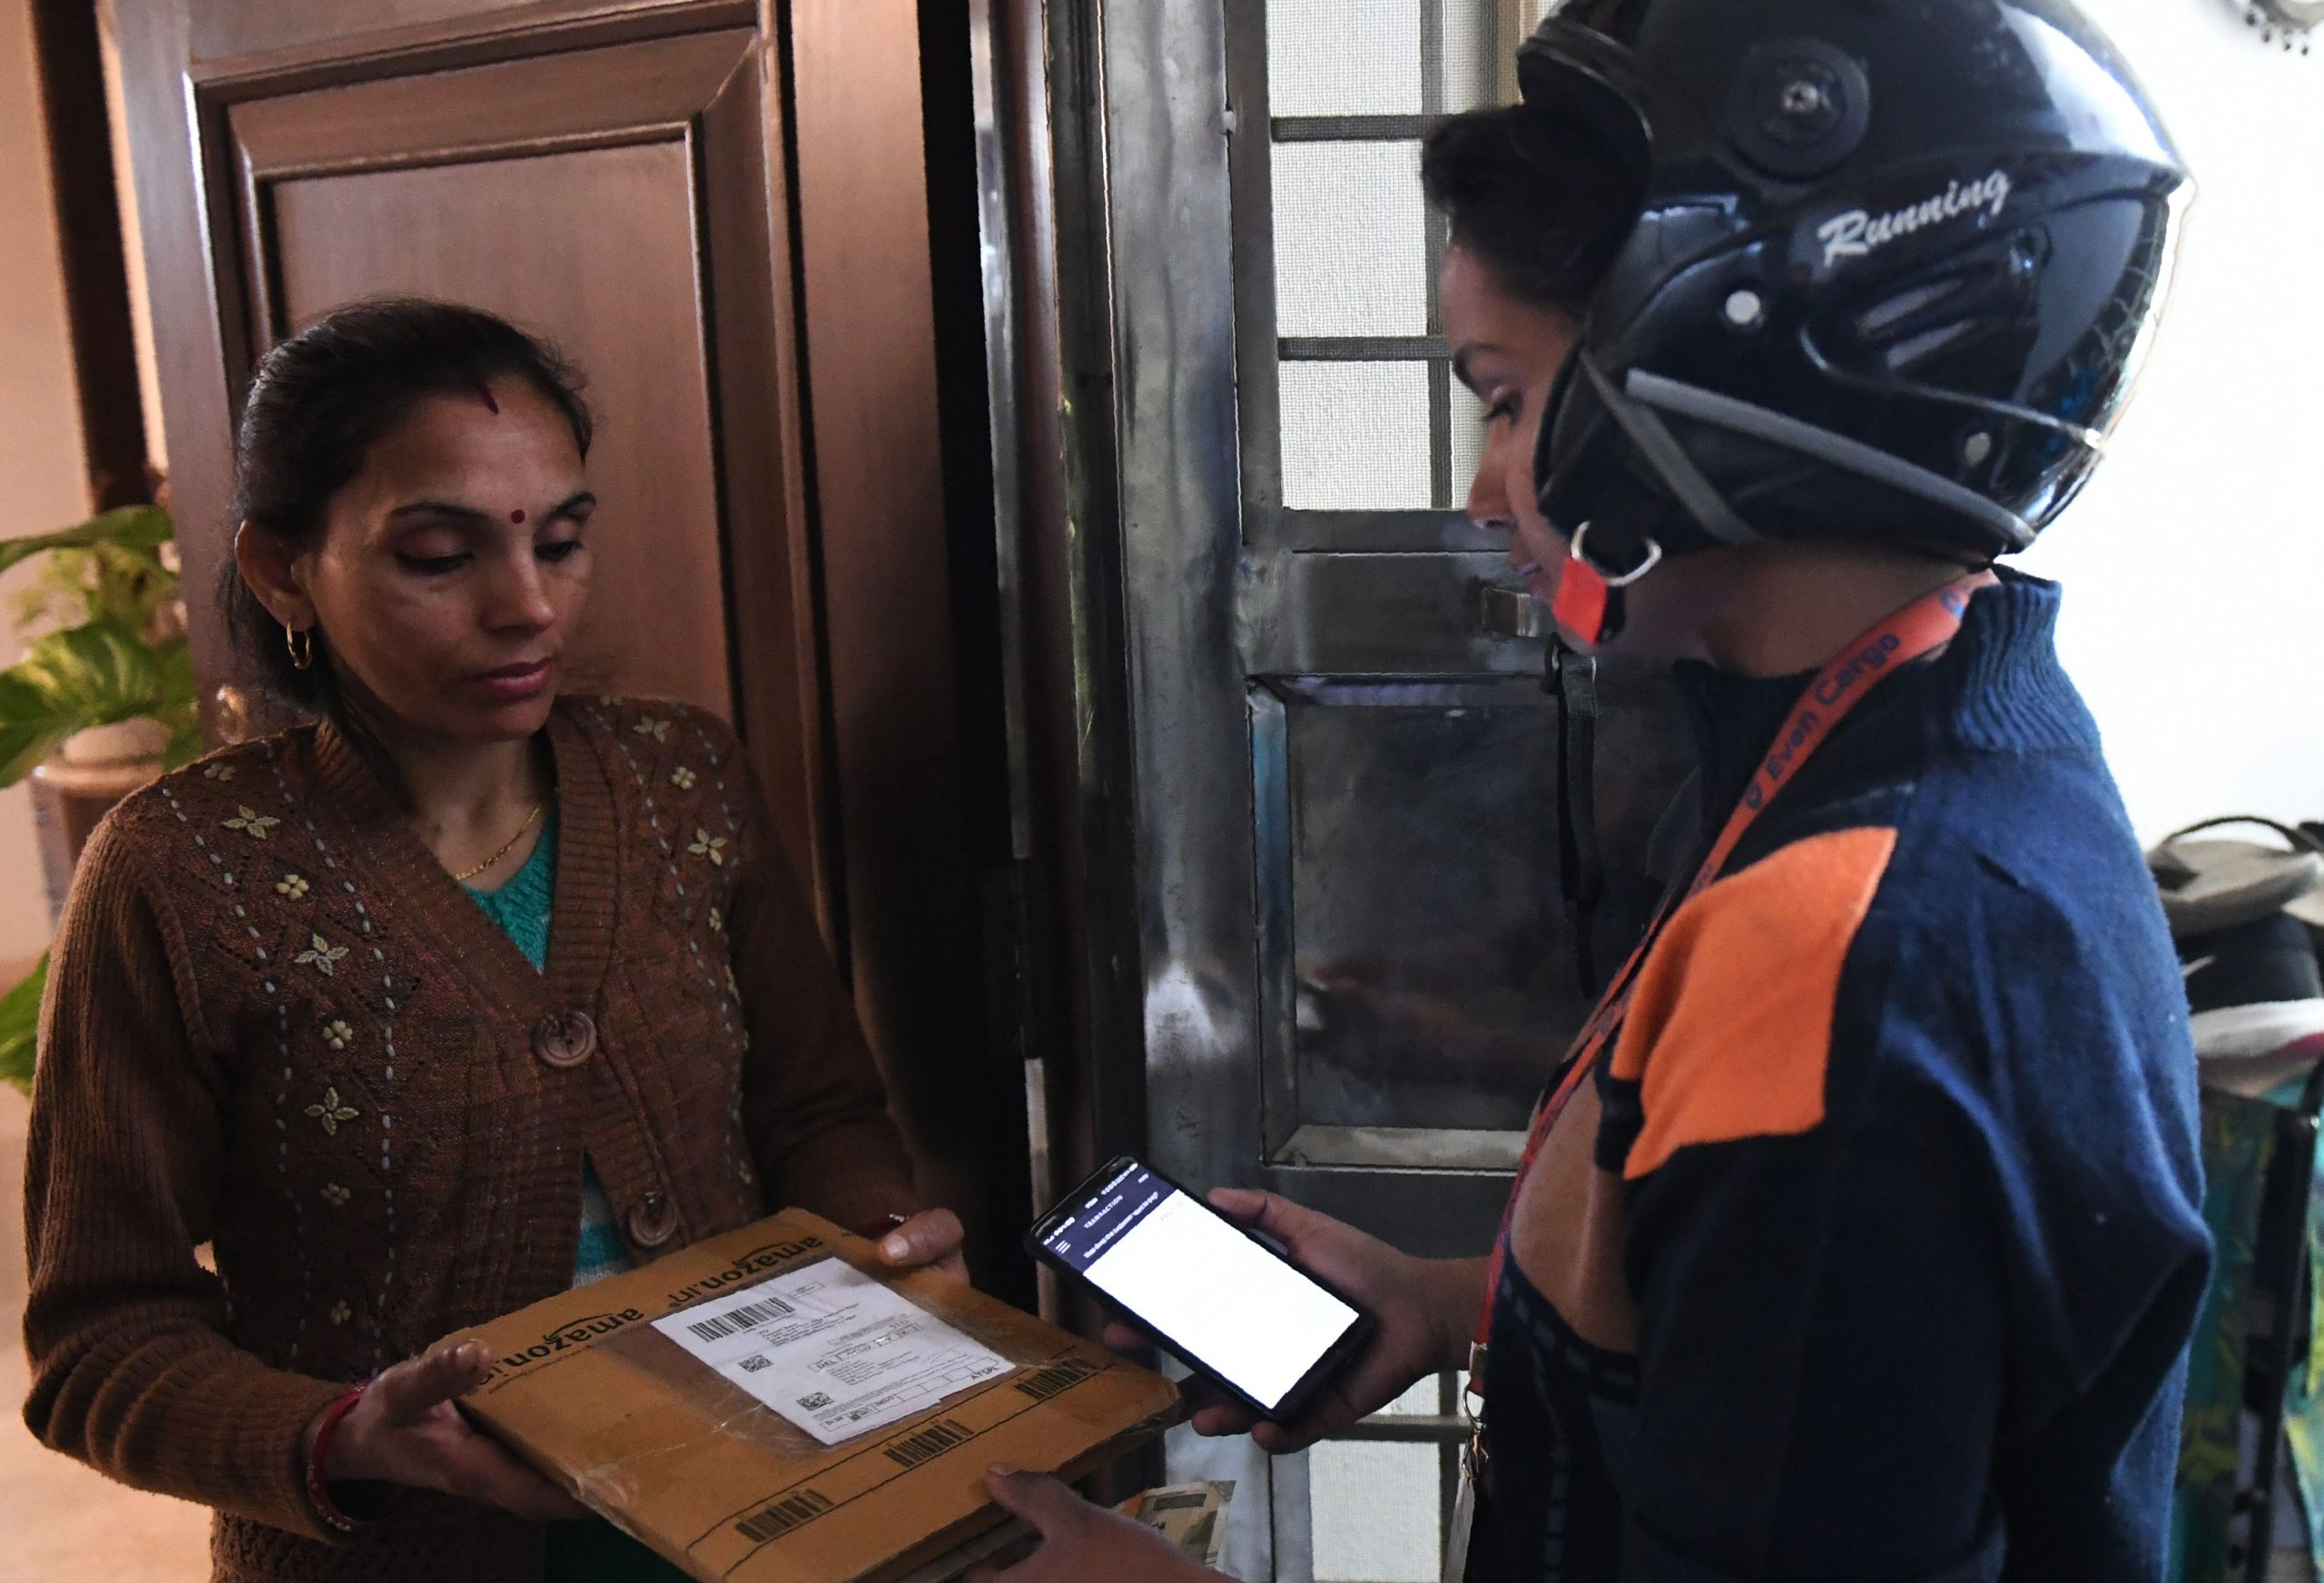 Indian delivery driver Jaya, 23, who works for Indias first women-only e-commerce logistics company, delivers a package in New Delhi on March 7, 2019. - Formed in 2016, Even Cargo trains and employs women from economically disadvantaged communities in professions that are traditionally inaccessible to them. These women are employed with Even Cargo for e-commerce logistics companies such as Amazon and Flipcart. (Photo by Money SHARMA / AFP)        (Photo credit should read MONEY SHARMA/AFP via Getty Images)